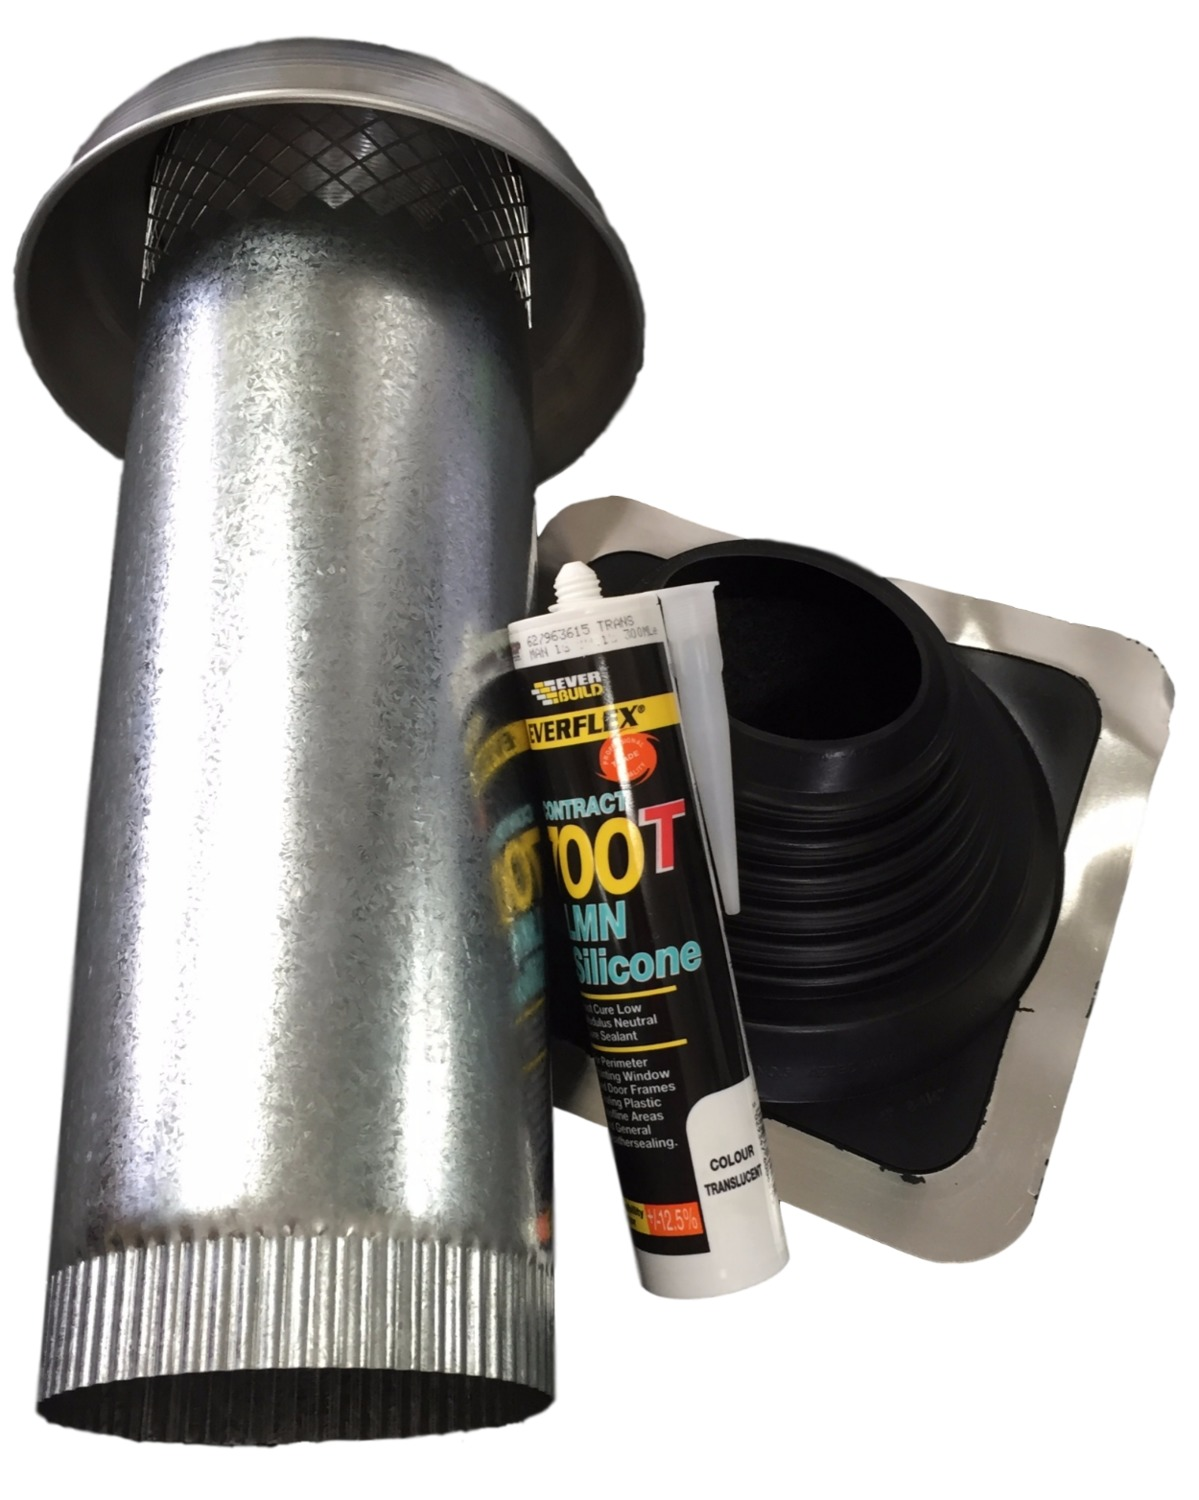 Roof Cowl Kit 100o Roof Cowls Airflow The Hvac Shop